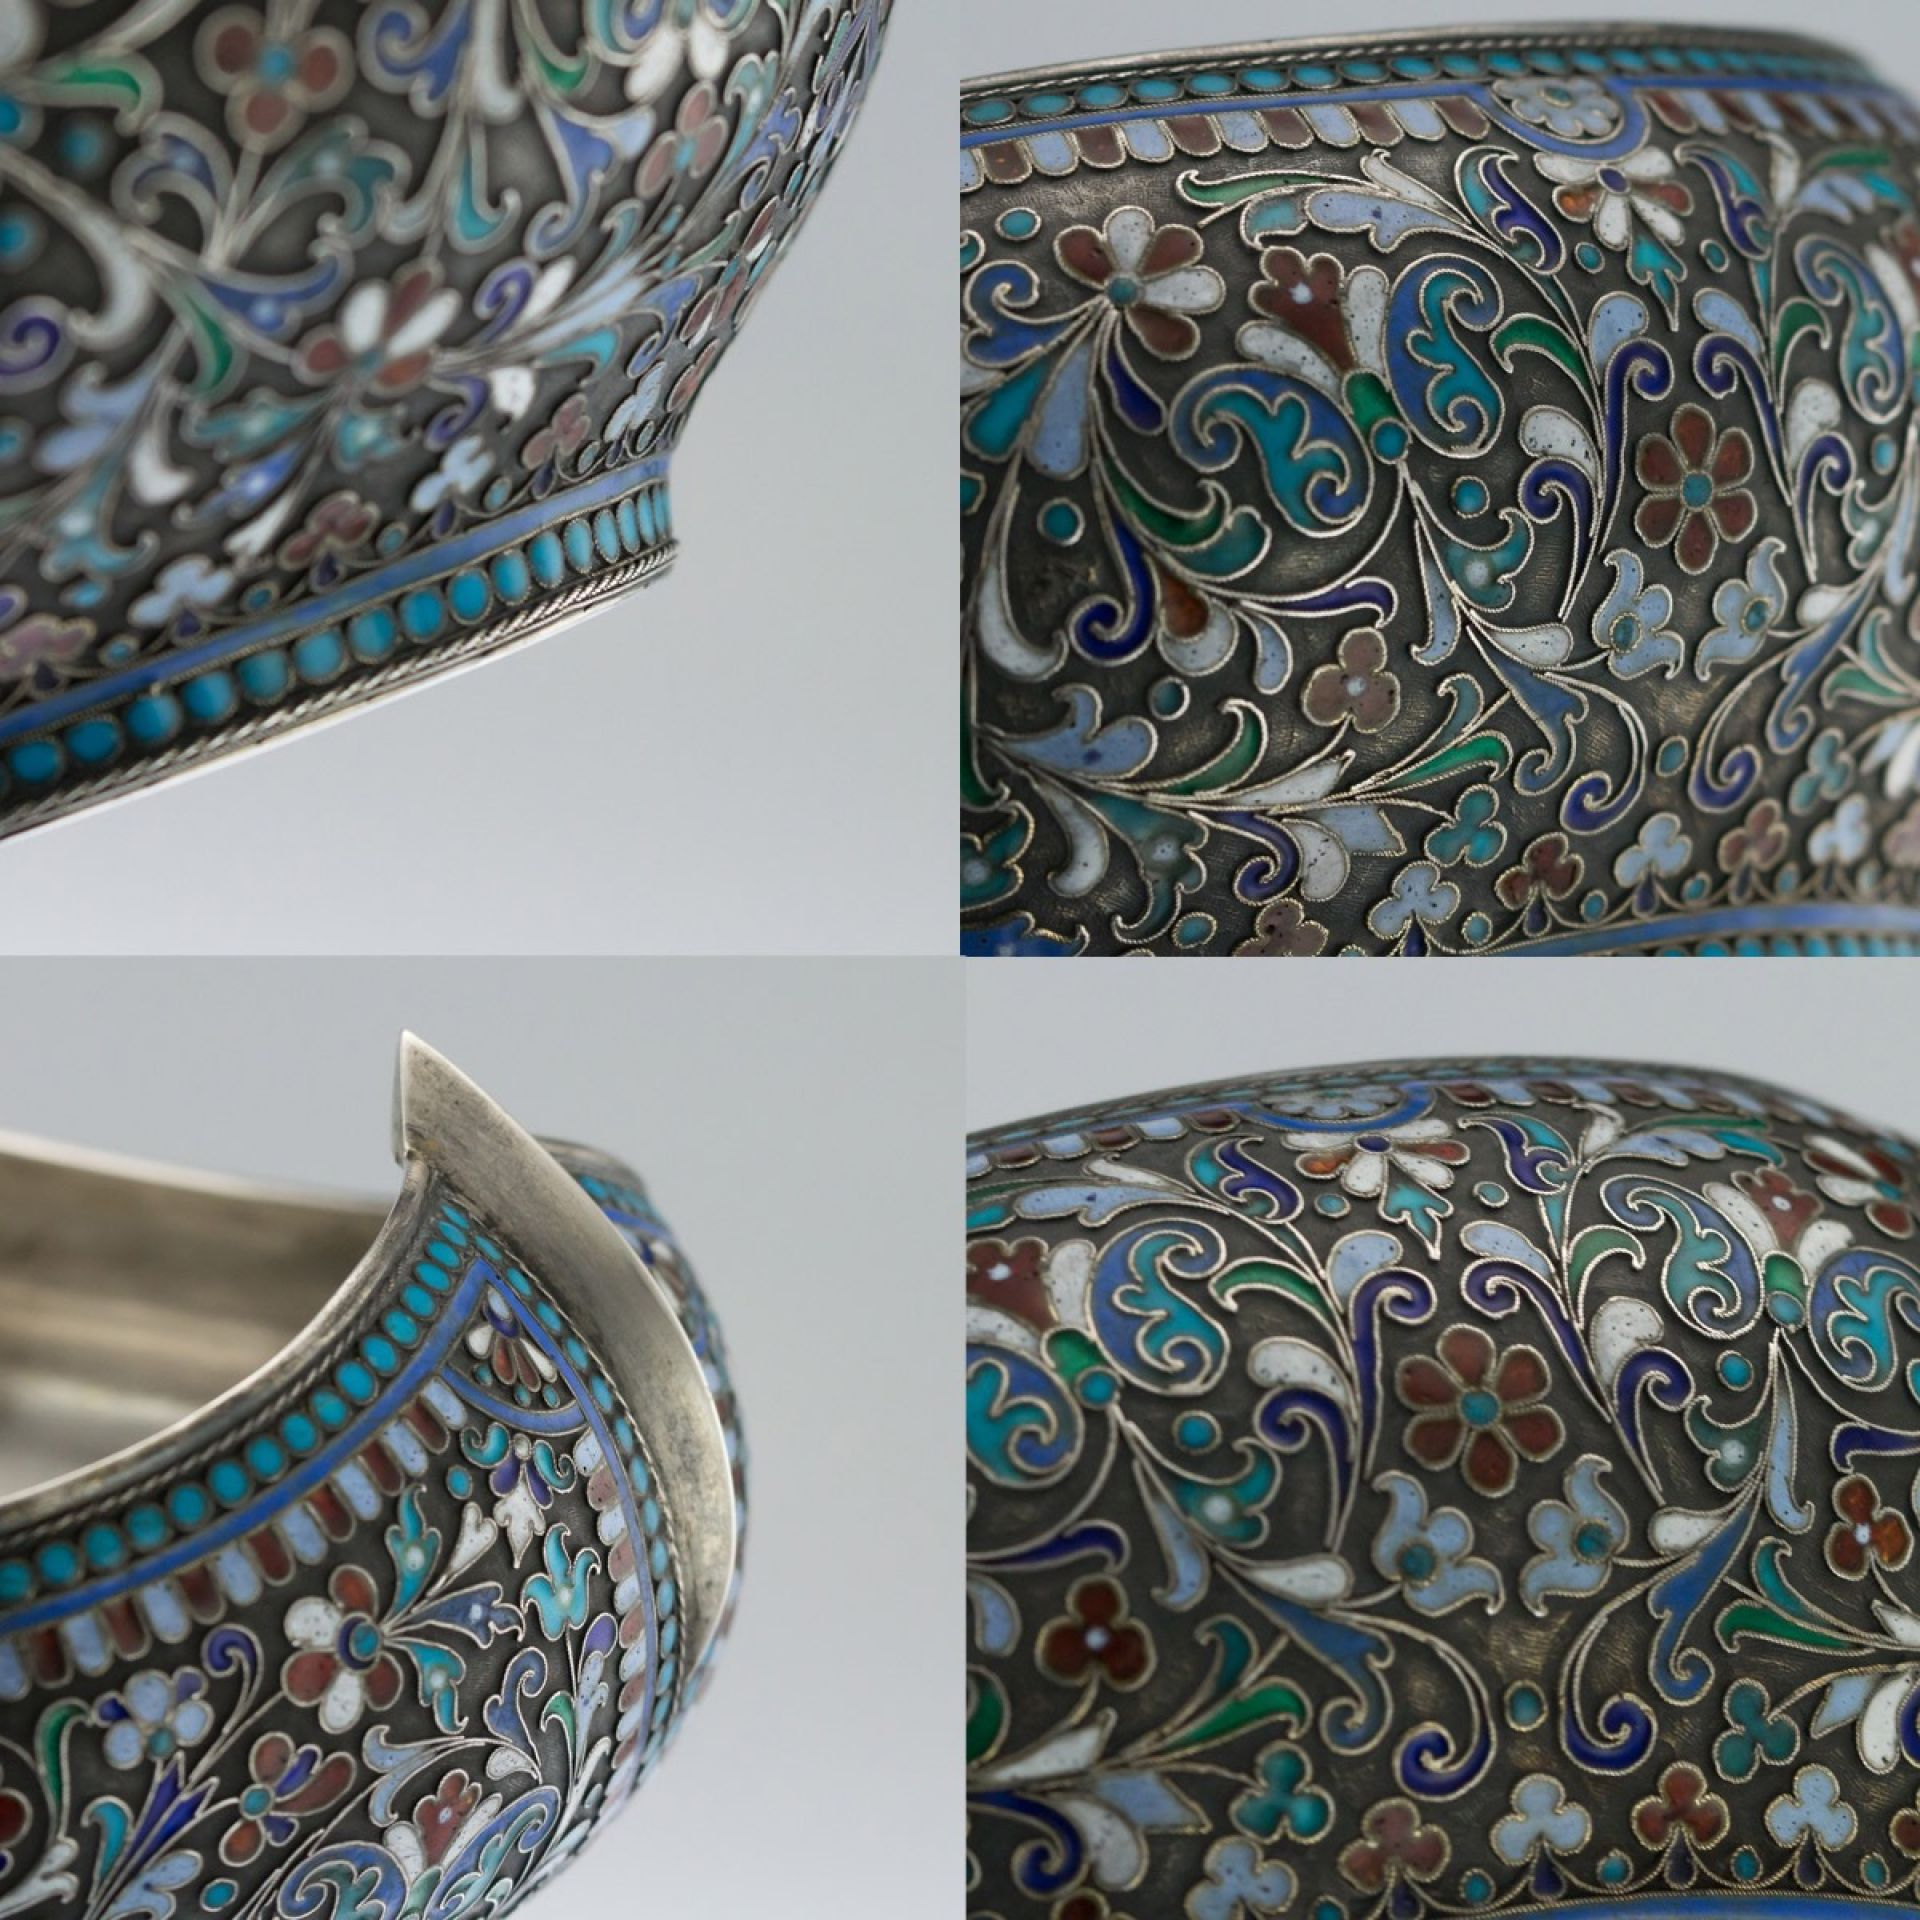 ANTIQUE 19thC RUSSIAN LARGE SOLID SILVER & ENAMEL KOVSH, VICTOR AKIMOV c.1890